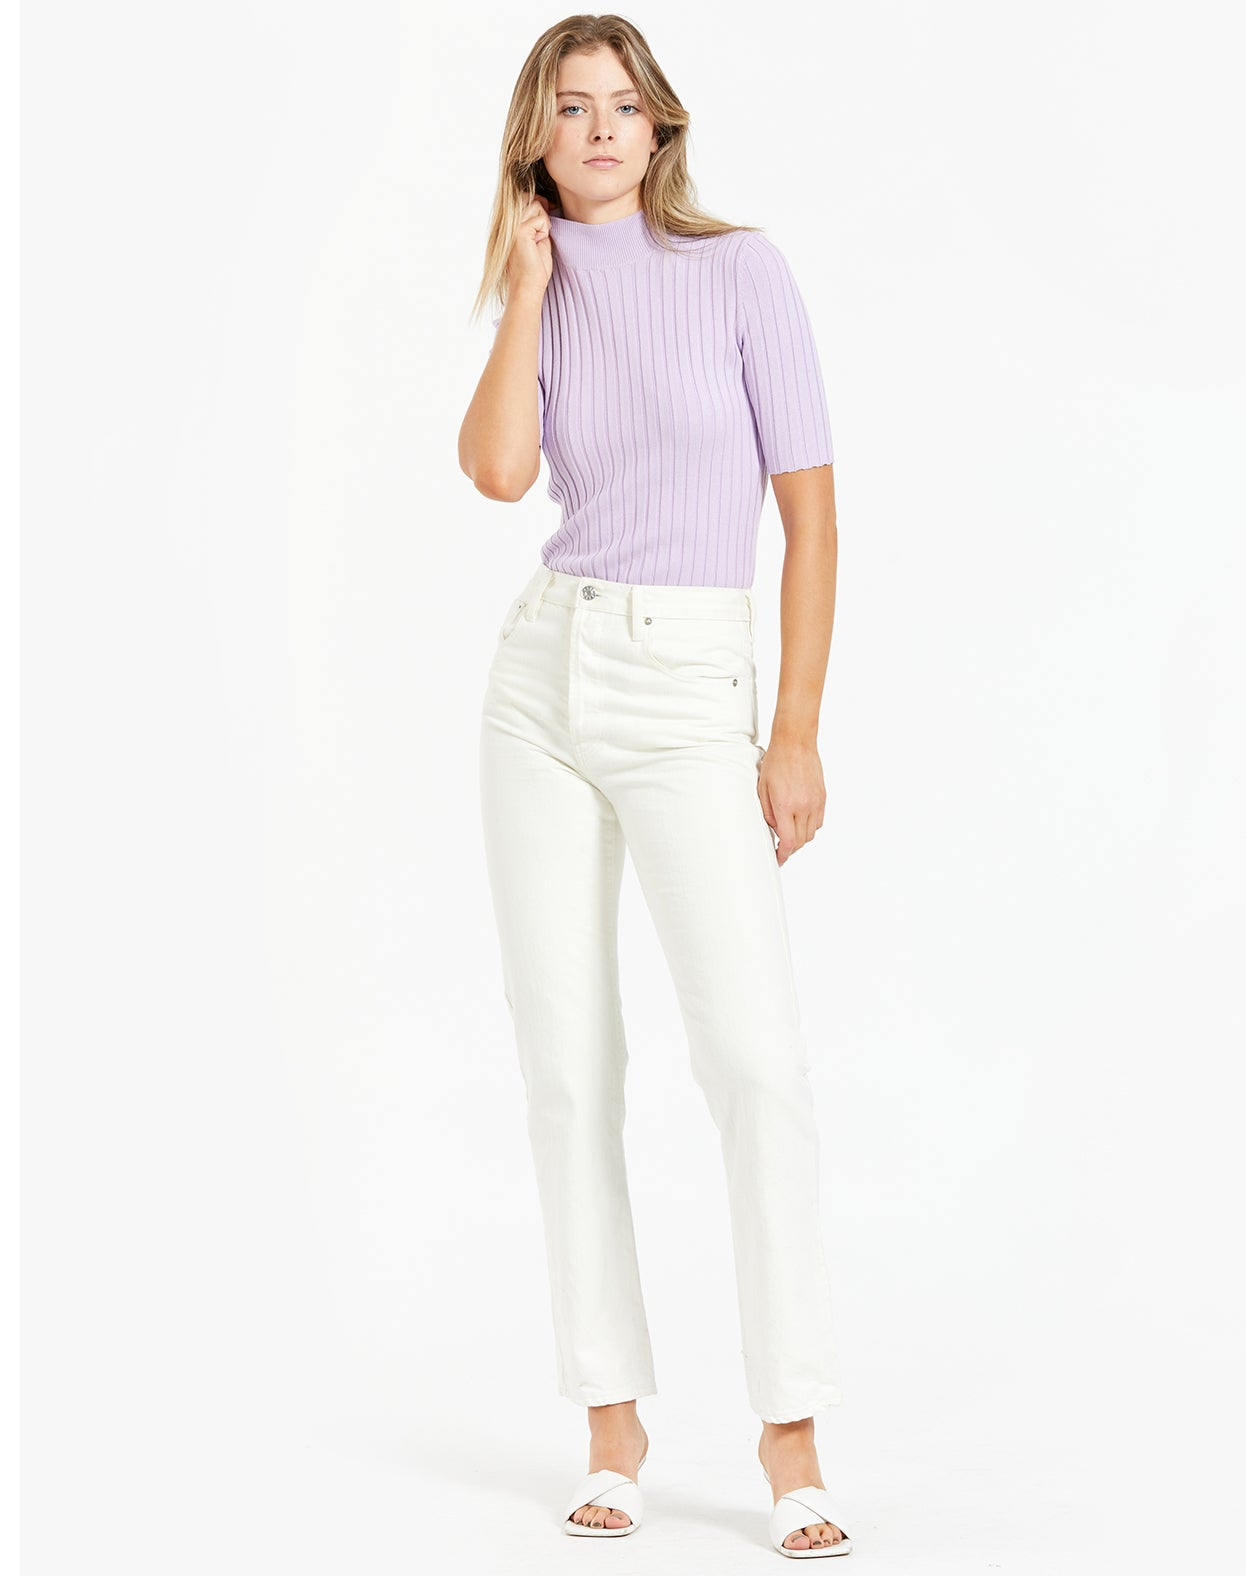 Ariana Knit Top - Lilac